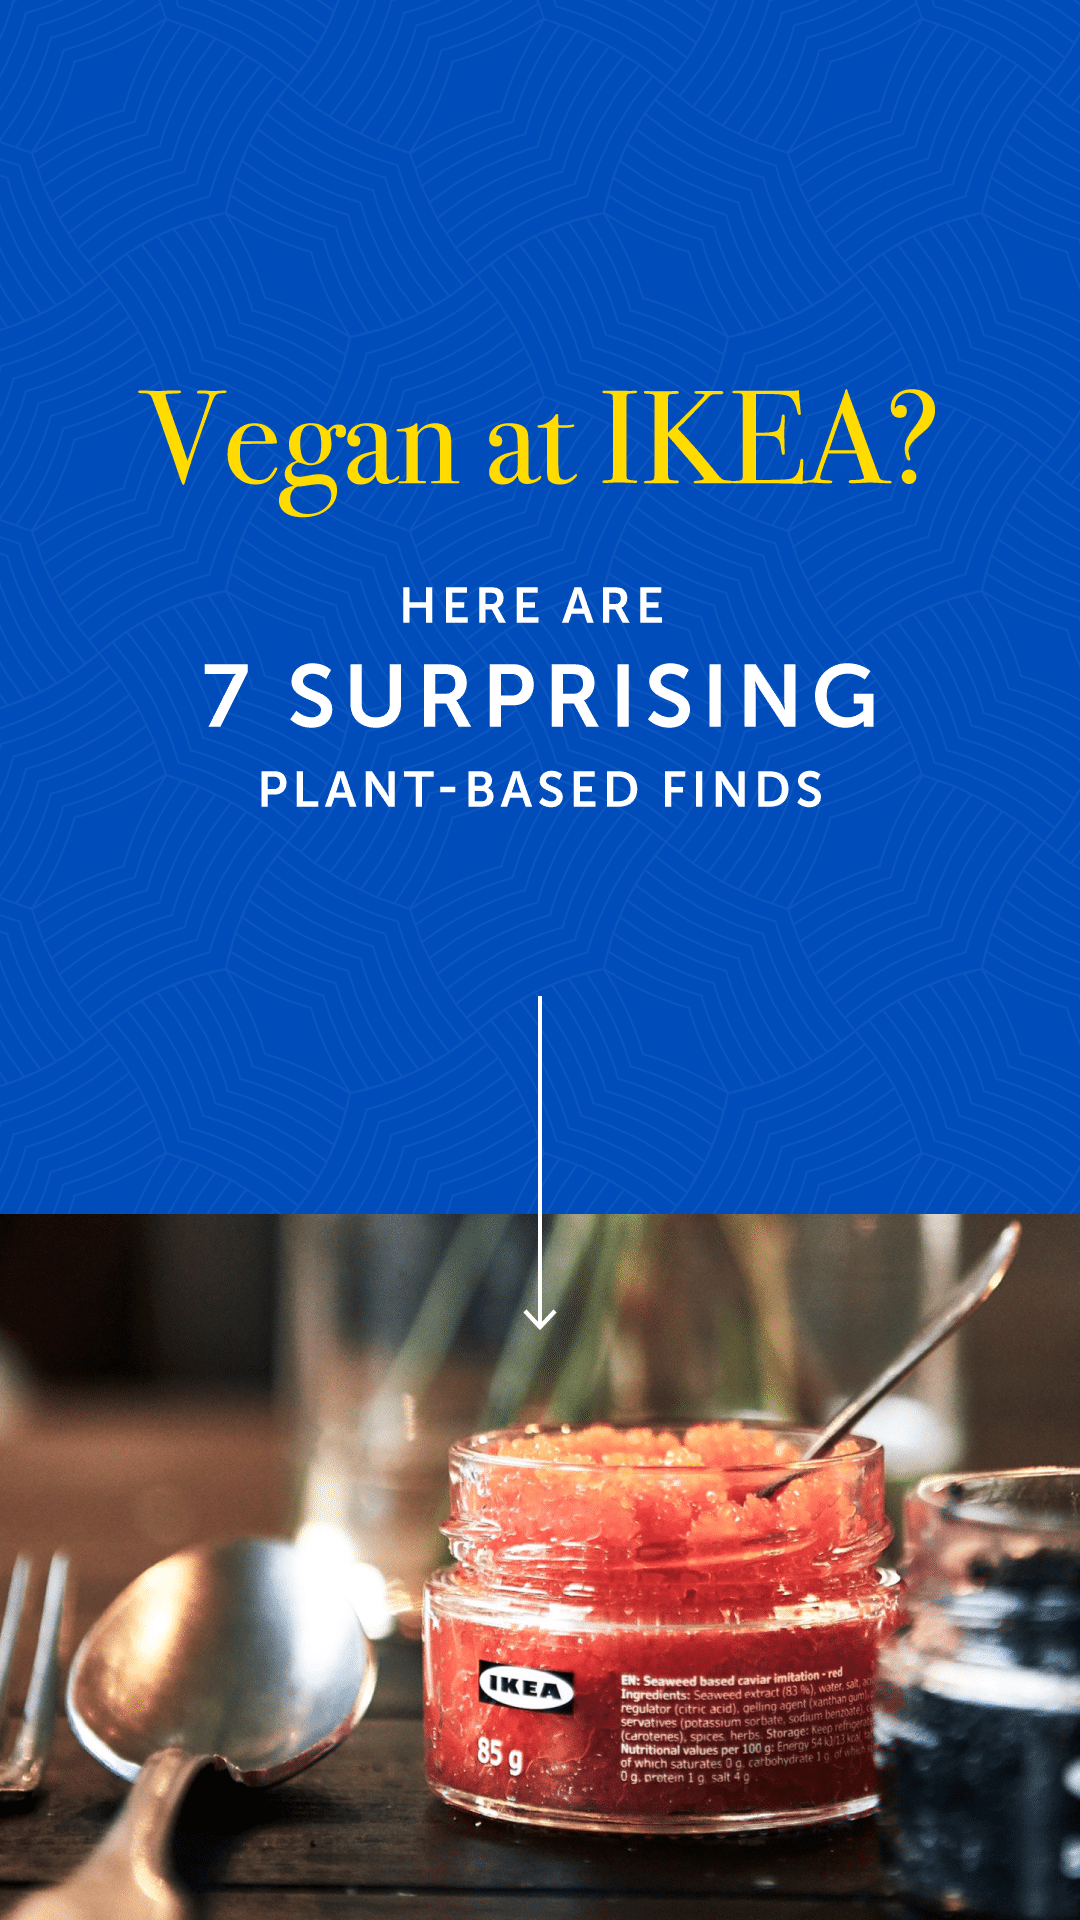 Vegan at IKEA? Here Are 7 Surprising Plant-Based Finds